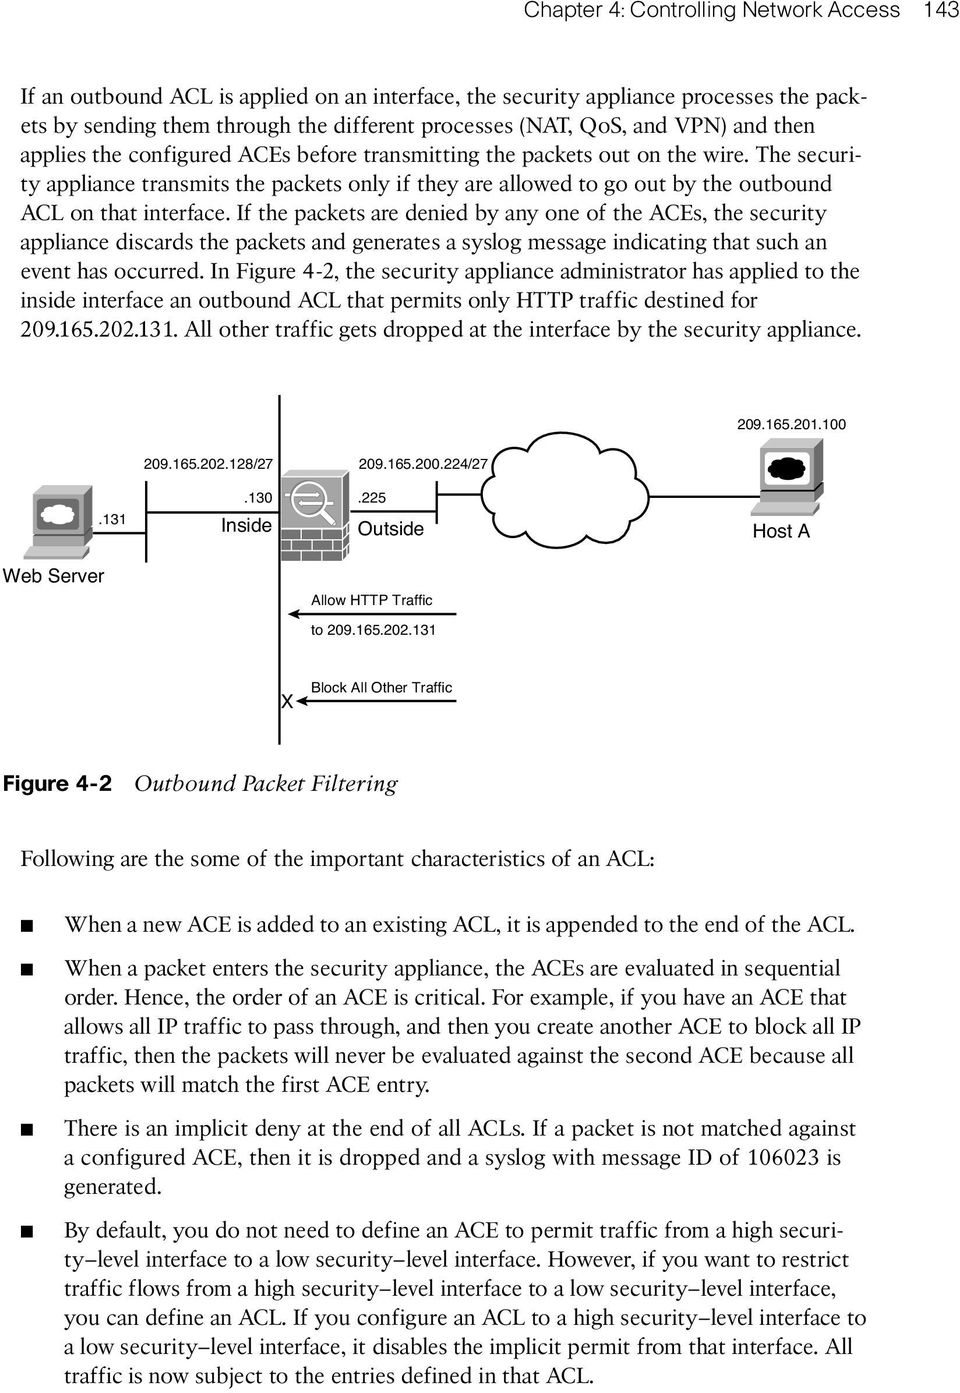 The security appliance transmits the packets only if they are allowed to go out by the outbound ACL on that interface.